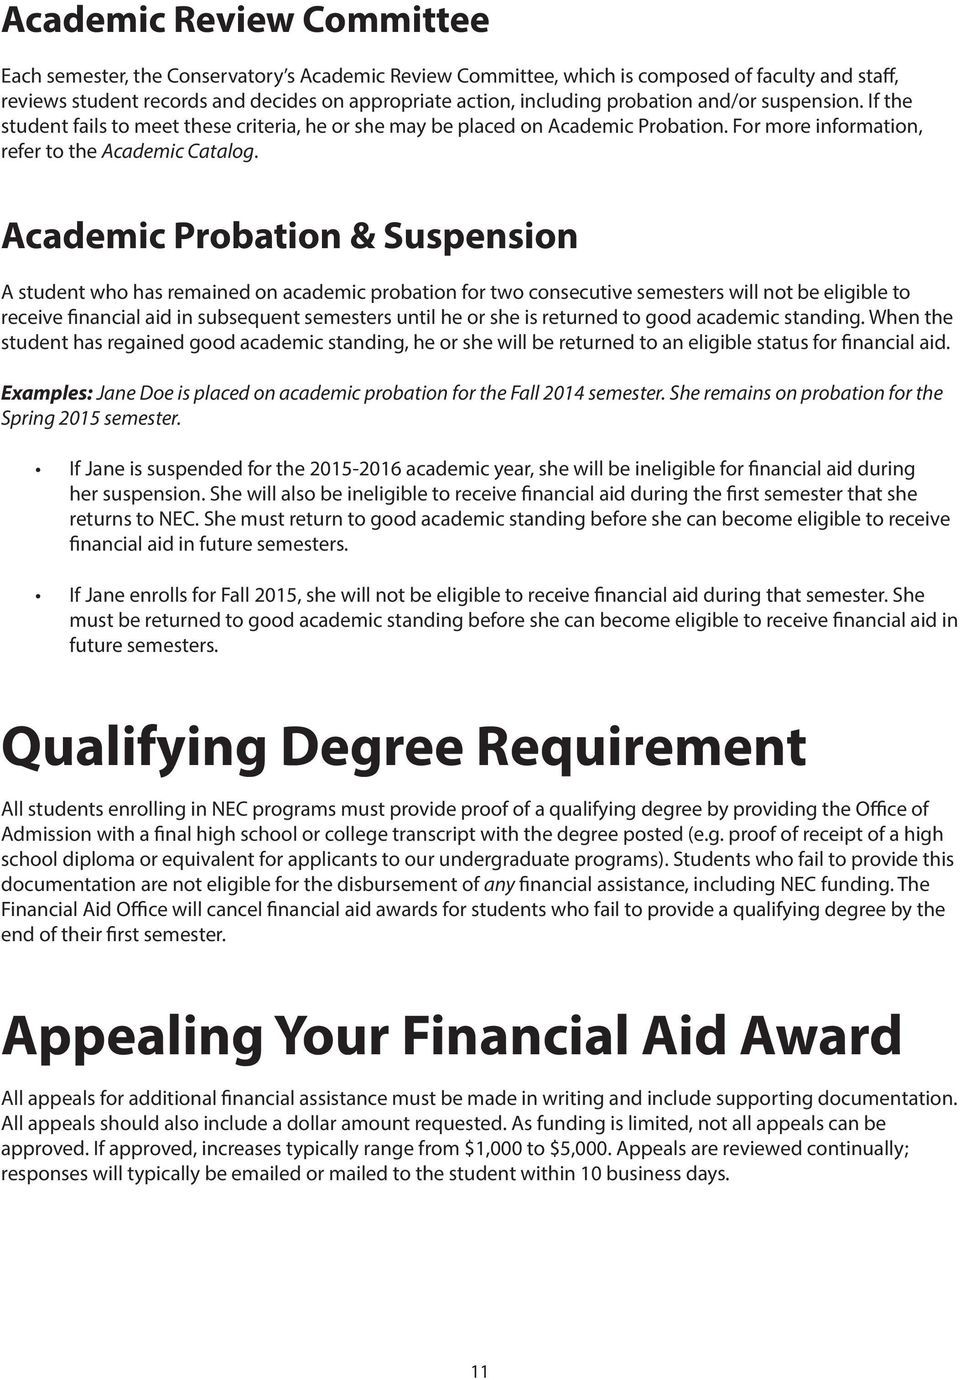 Academic Probation & Suspension A student who has remained on academic probation for two consecutive semesters will not be eligible to receive financial aid in subsequent semesters until he or she is